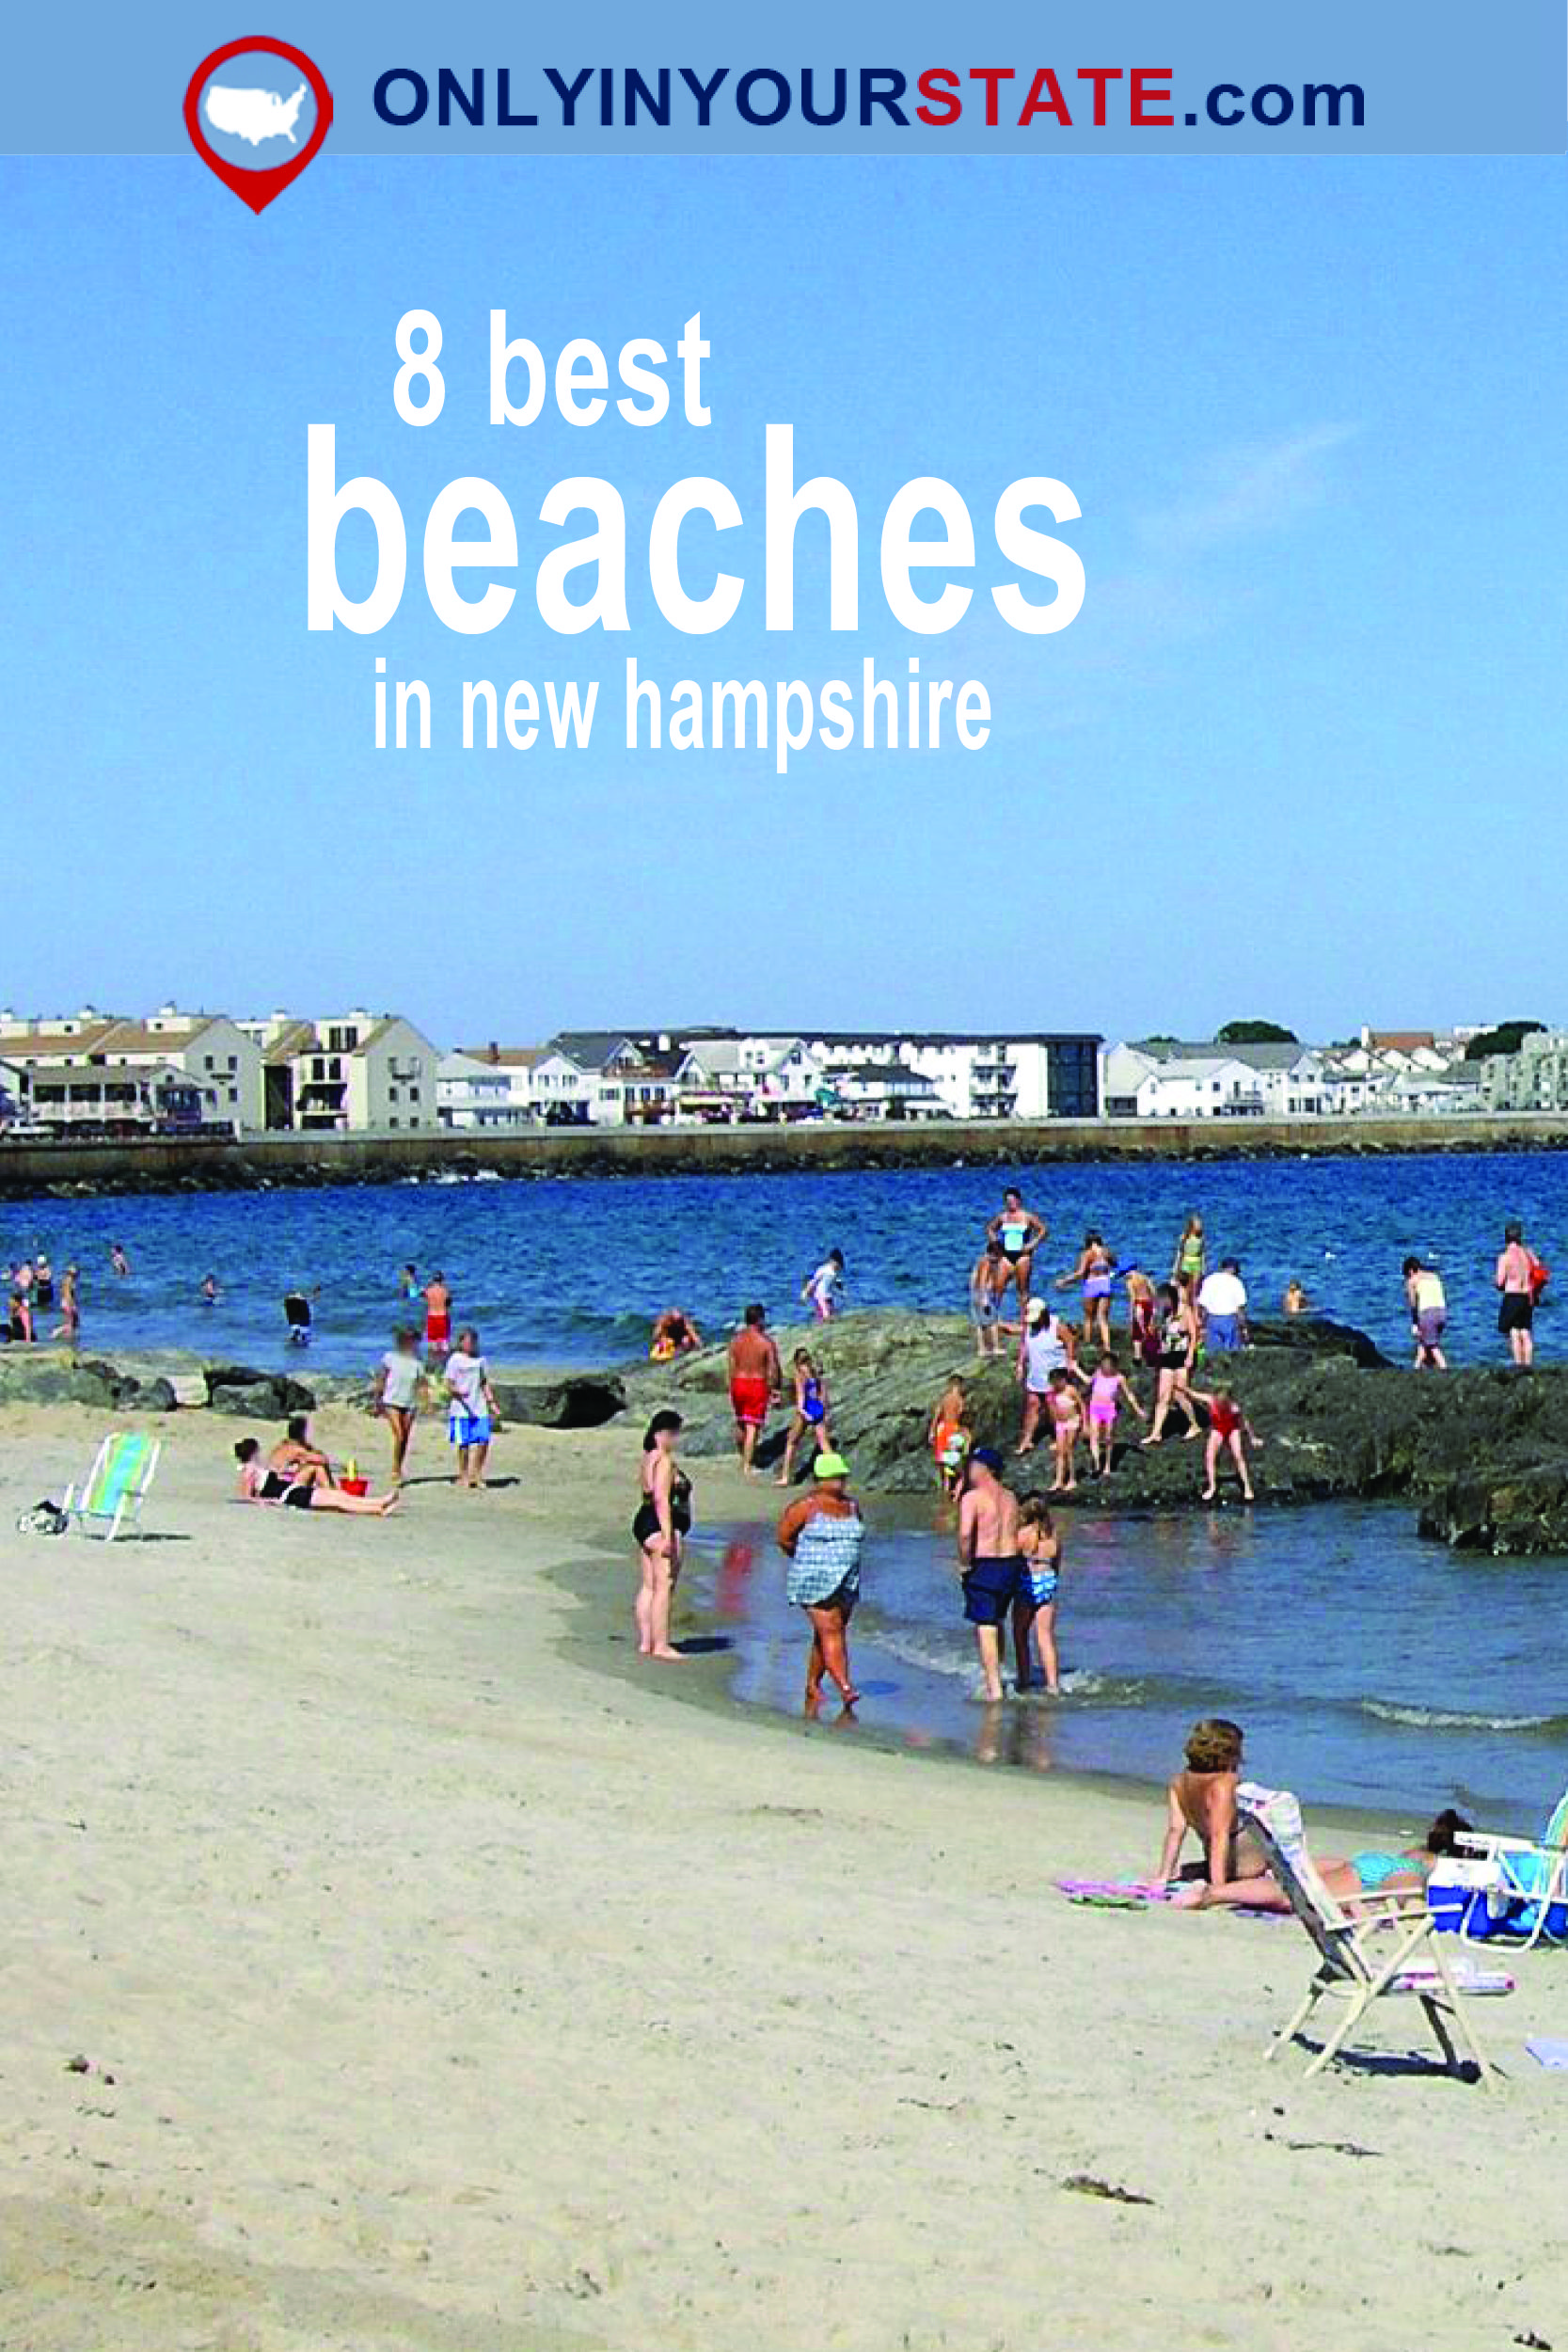 8 gorgeous beaches in new hampshire that you have to check out this